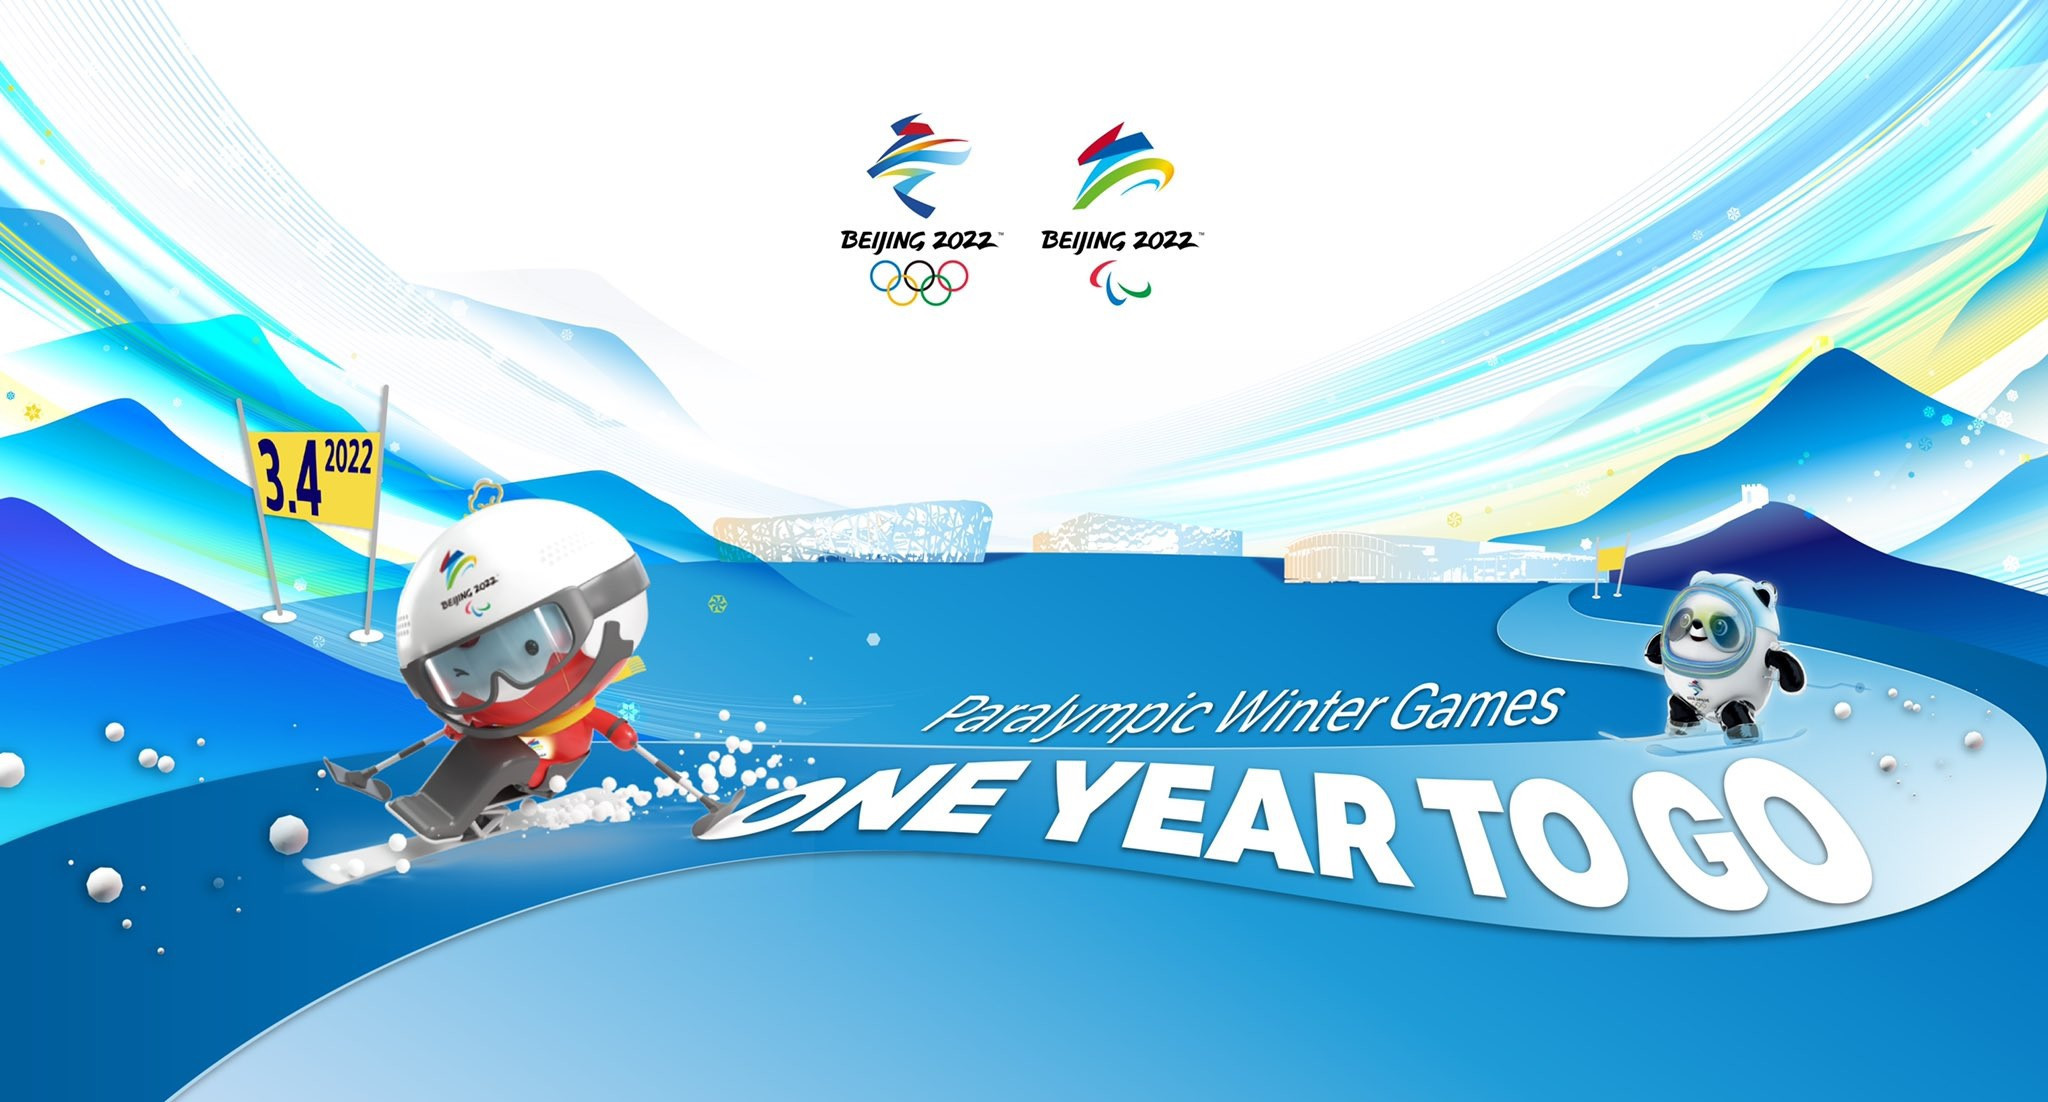 Organisers upbeat as one-year countdown to Beijing 2022 Winter Paralympics begins